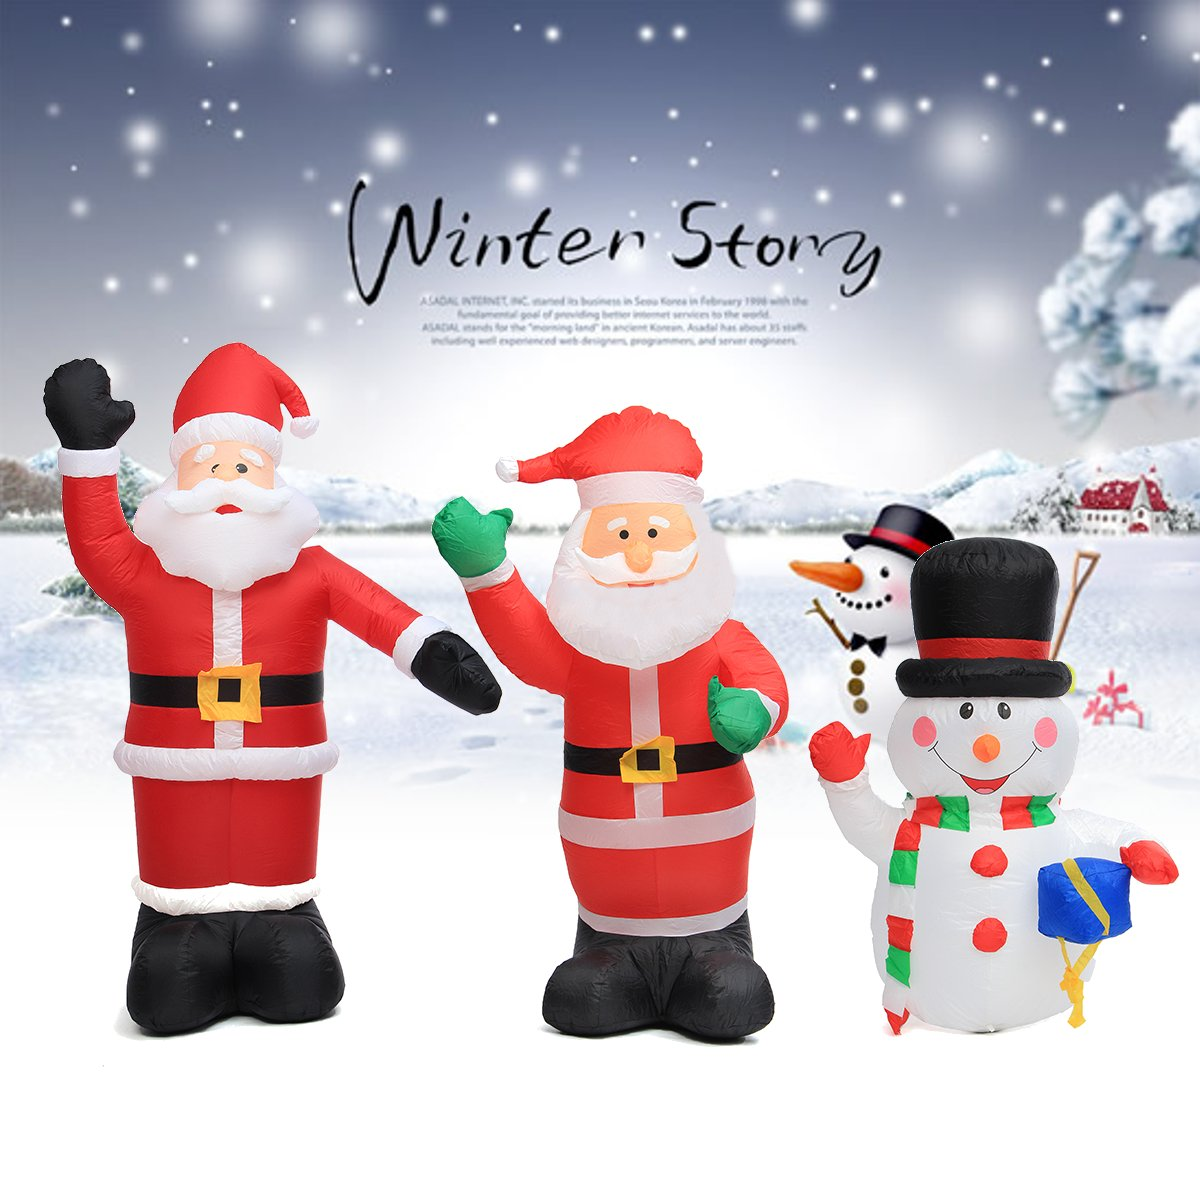 120cm/180 cm/240cm Air Inflatable Santa Claus Snowman Outdoor Airblown Christmas Decoration Figure Kids Classic Children Toys air shipping christmas archway airblown animated inflatable gingerbread house with led lights for yard decoration